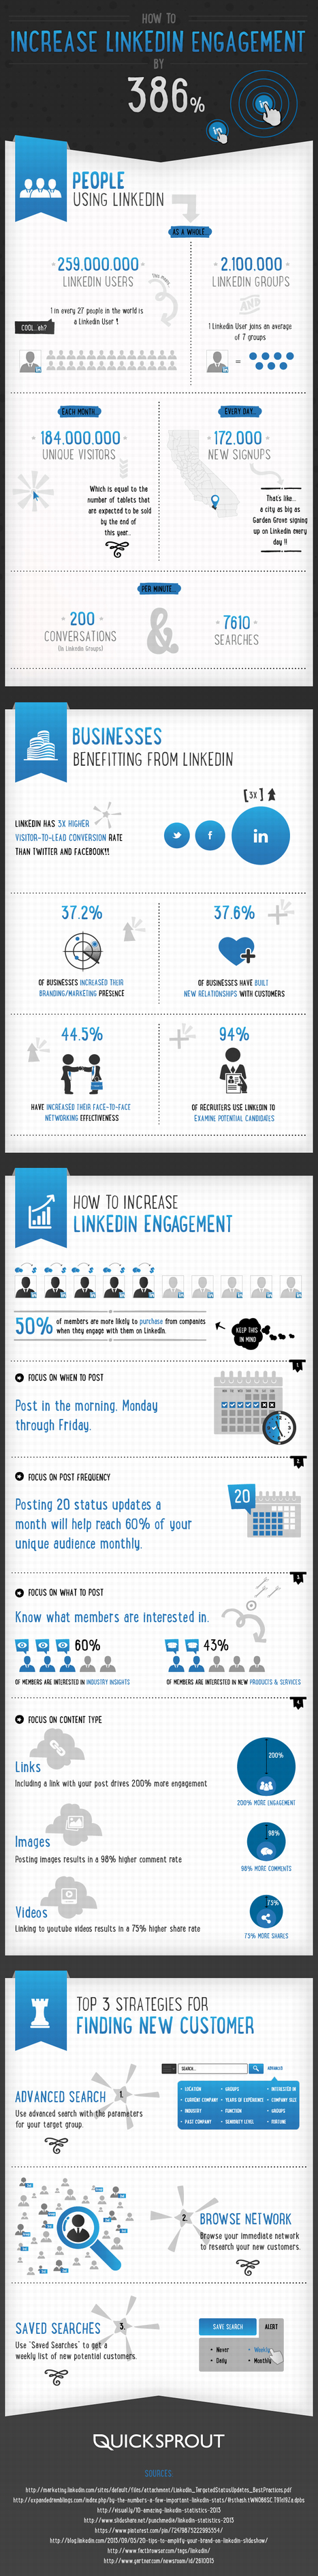 Must-Know Strategies That Boost Your #LinkedIn Engagement great #InfoGraphic | Profil Linkedin | Scoop.it